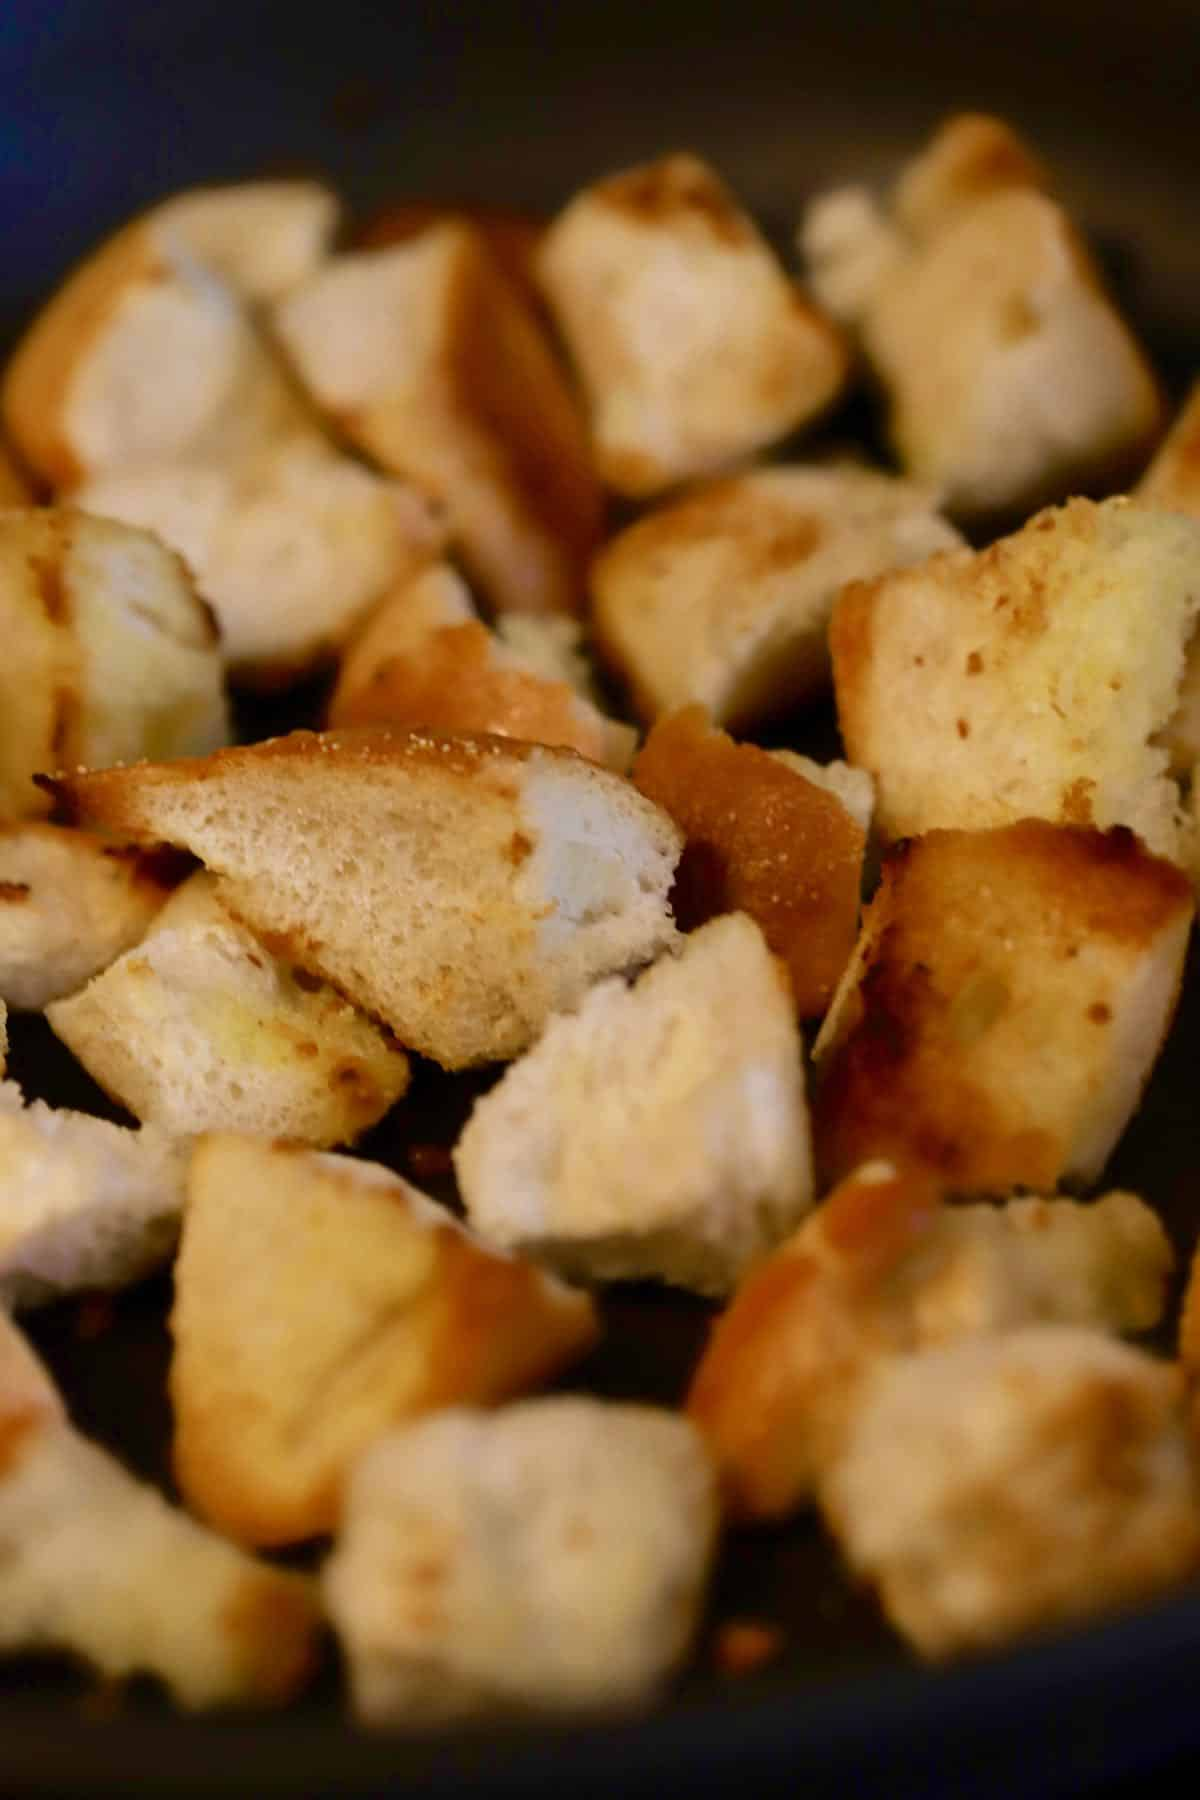 Toasting bread cubes in olive oil in a skillet.